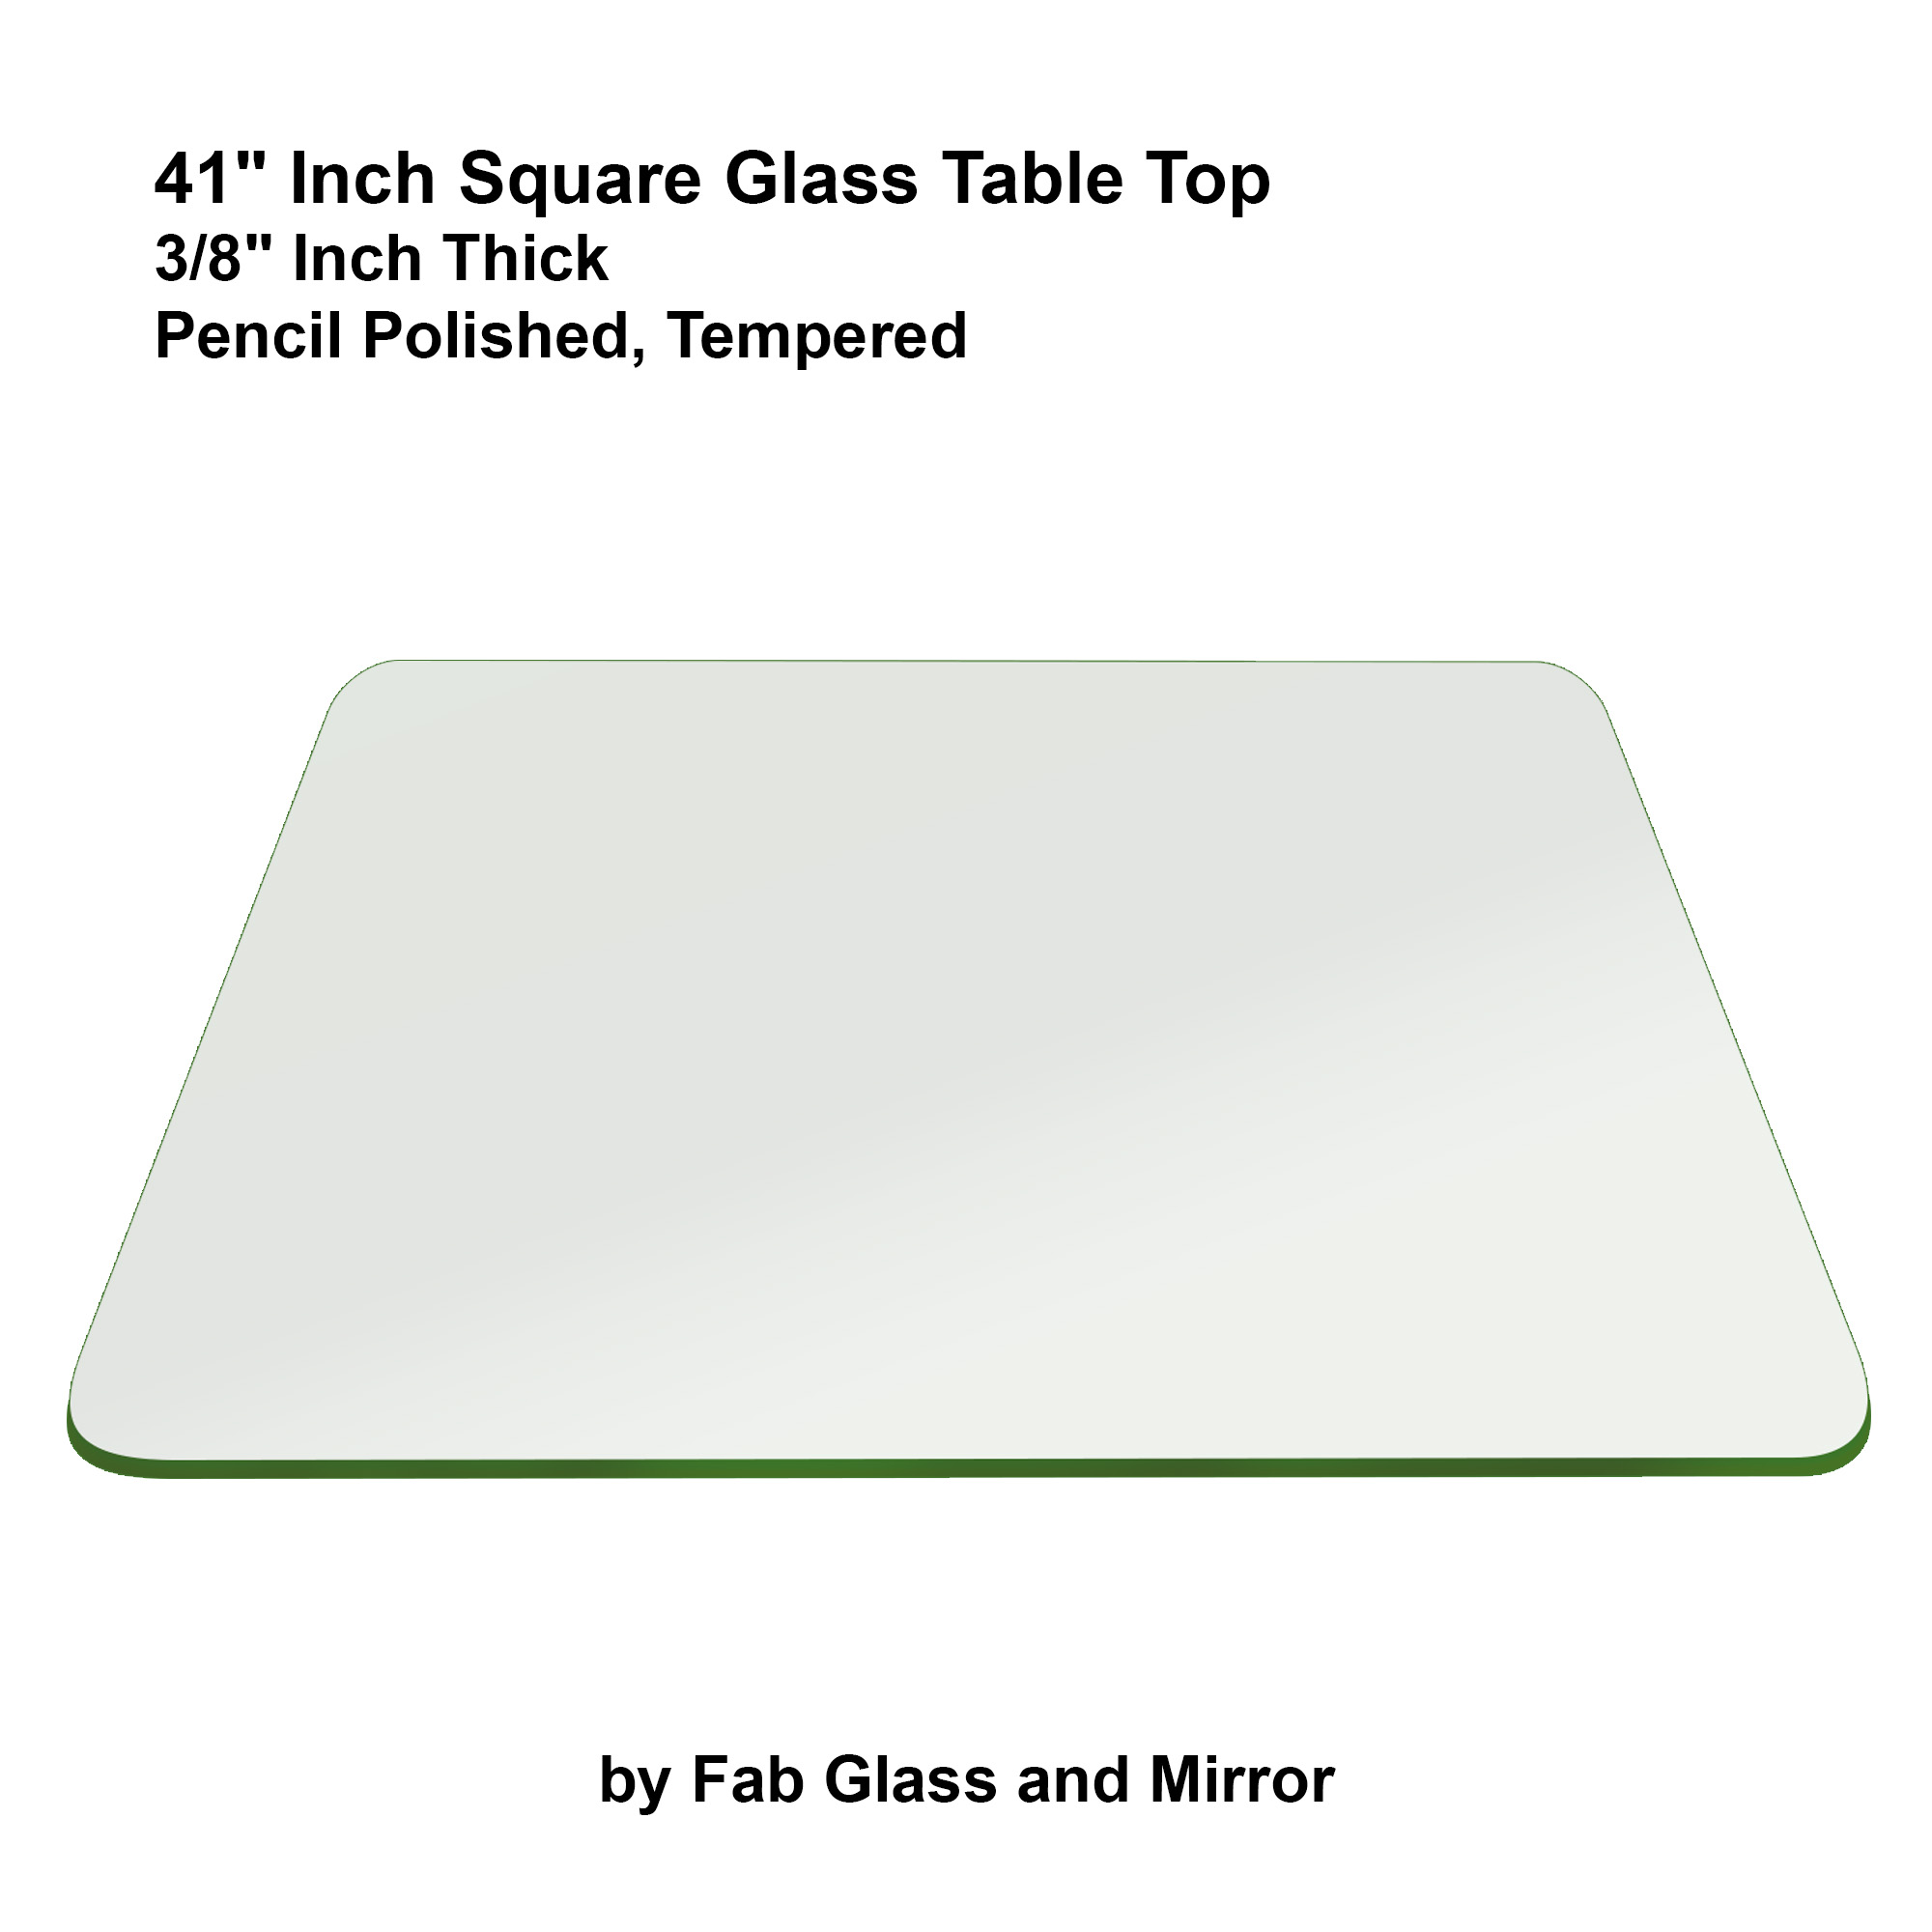 Good Square Glass Table Tops   Discounted Square Glass Tops For Dining Table